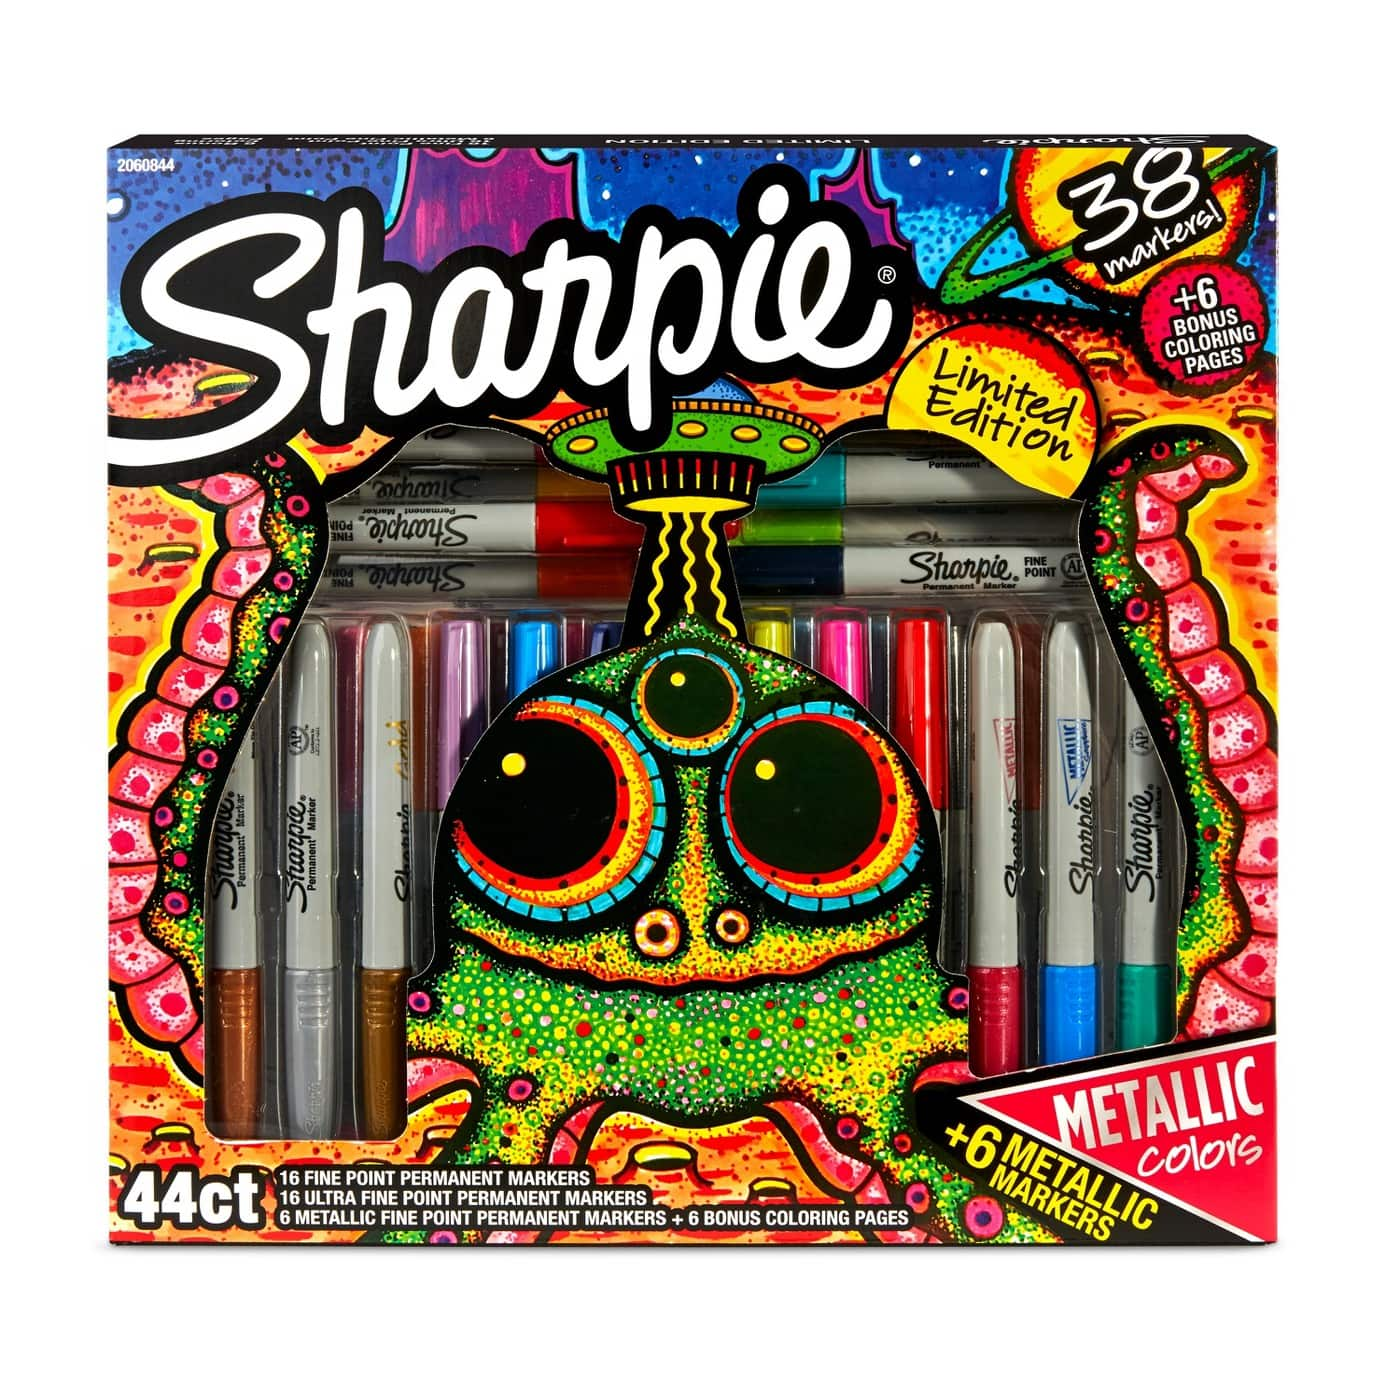 Sharpie 38ct Multicolor Marker Set - $9.00 on clearance @ Target B&M